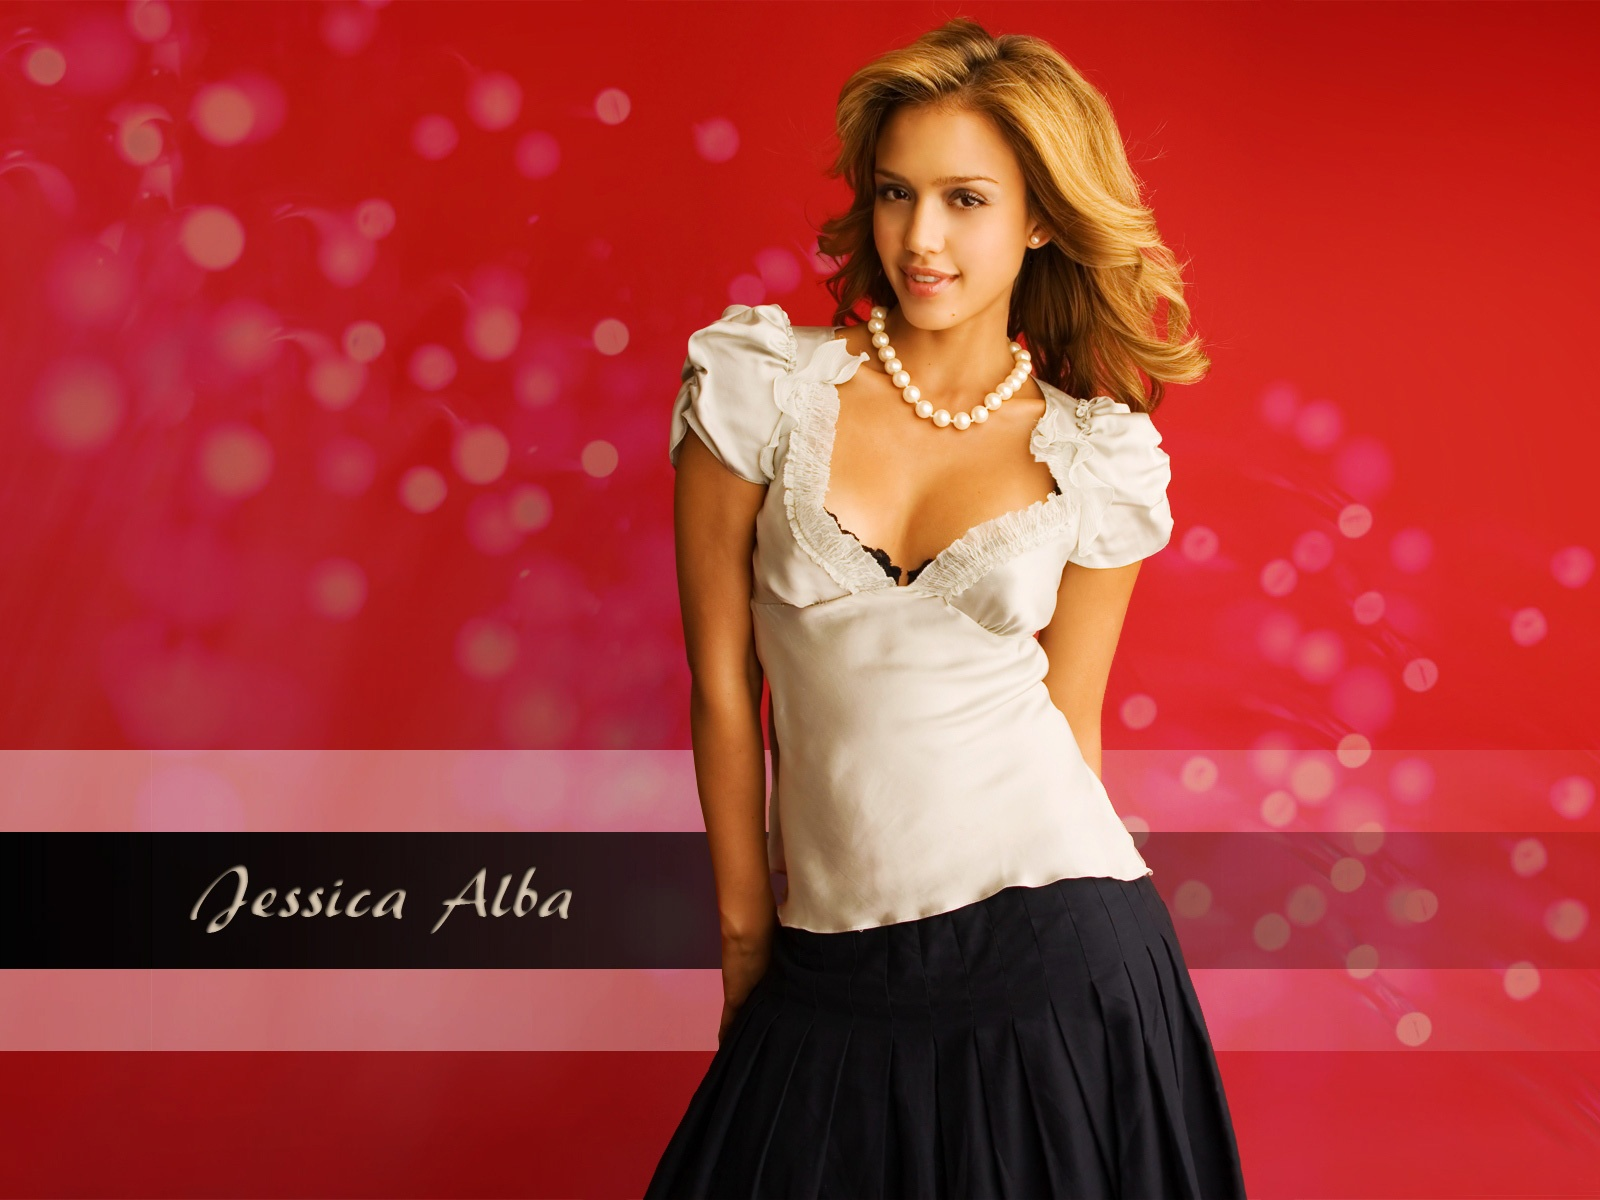 jessica alba wallpapers hd A8